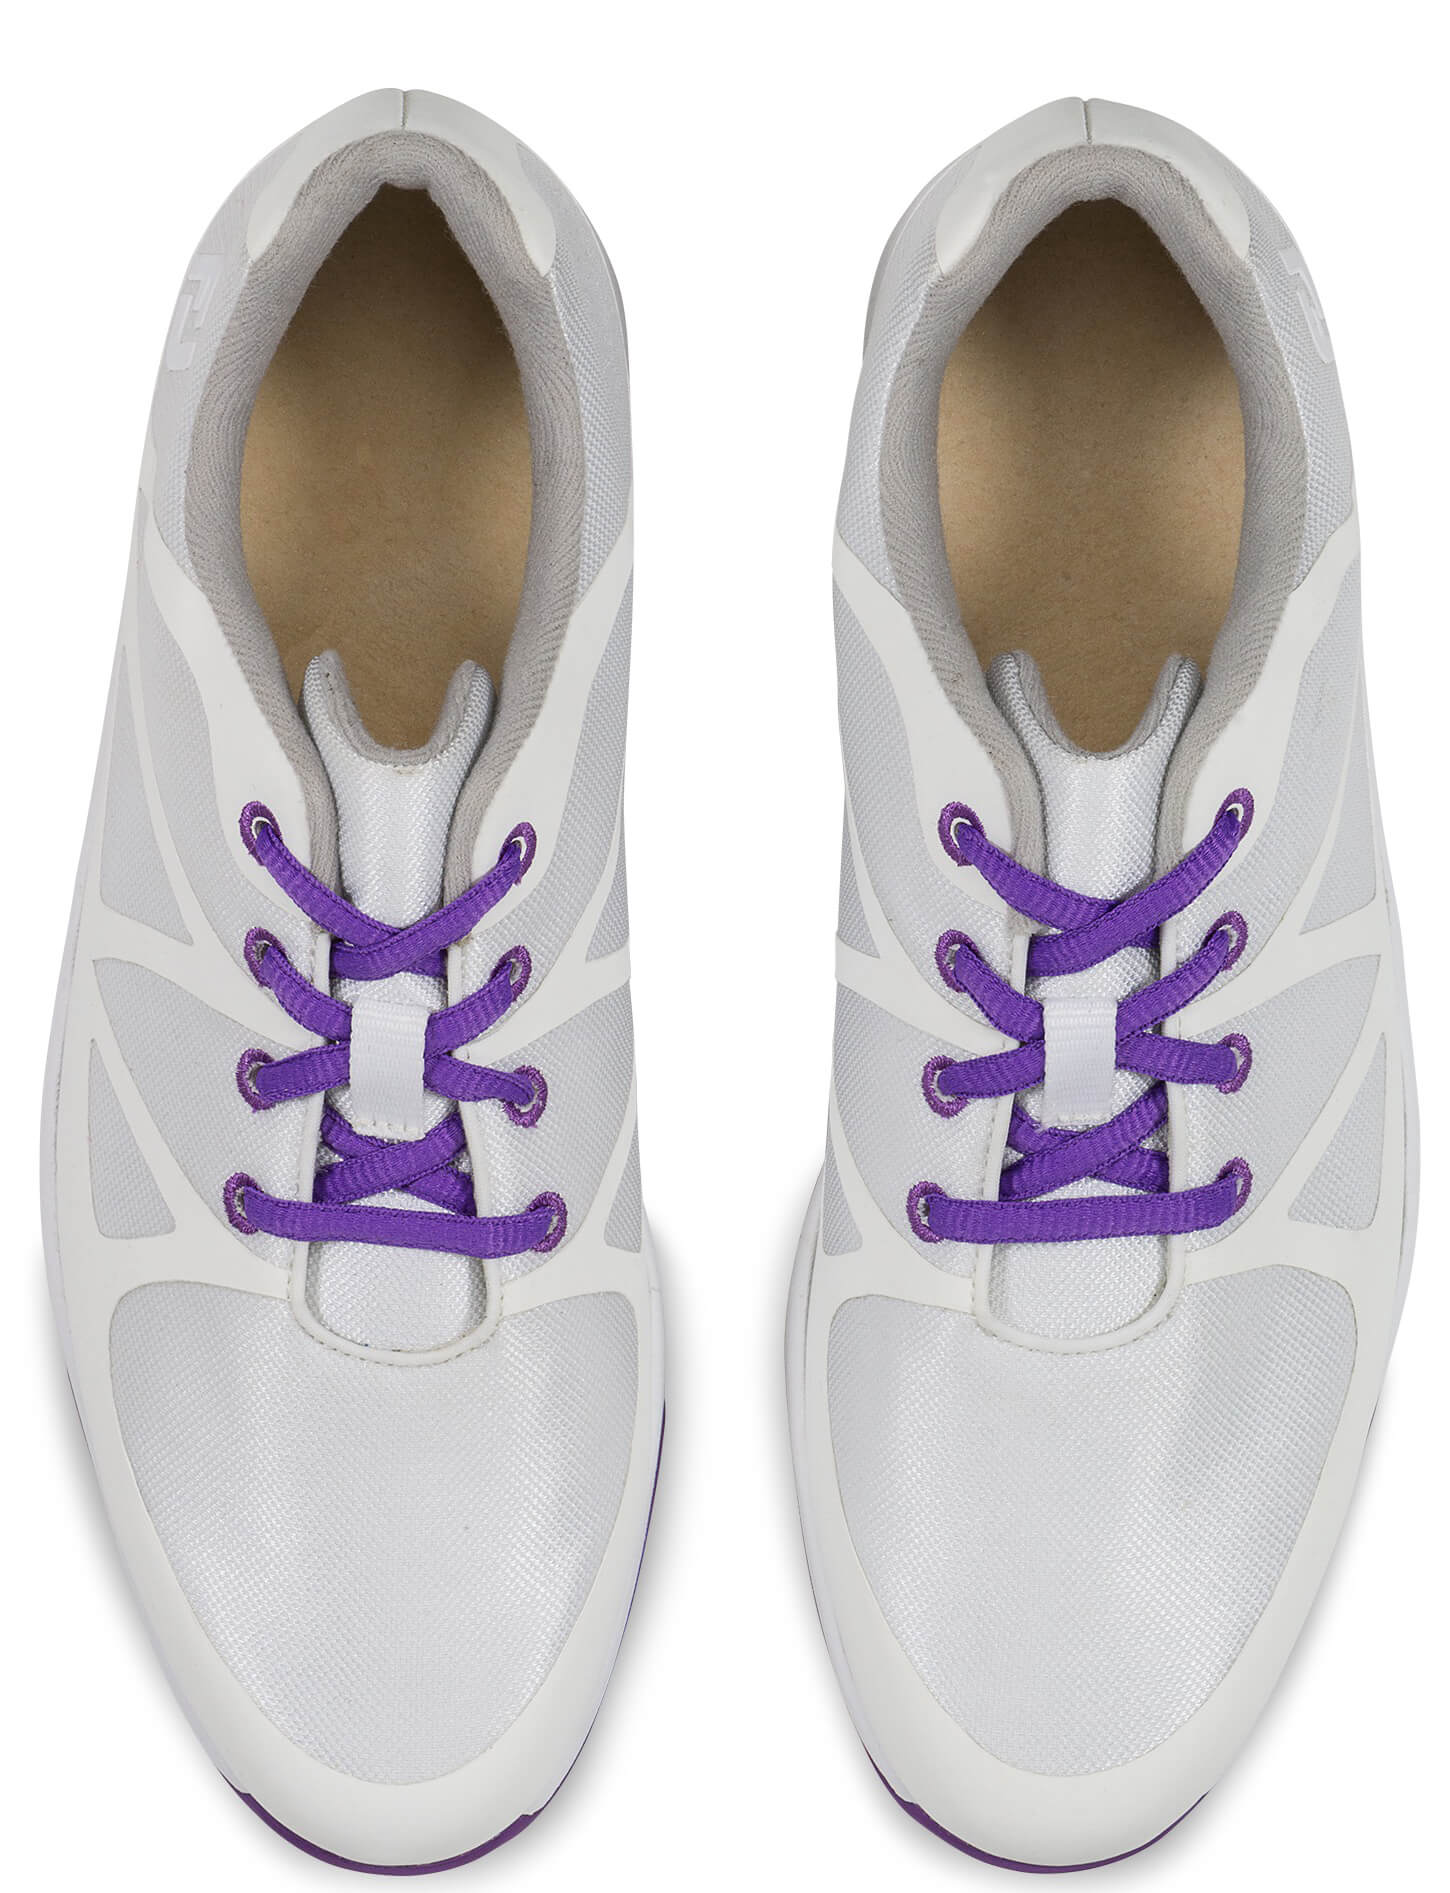 FootJoy-Women-039-s-Leisure-Golf-Shoes-Spikeless-Ladies-New-Choose-Color-amp-Size thumbnail 11